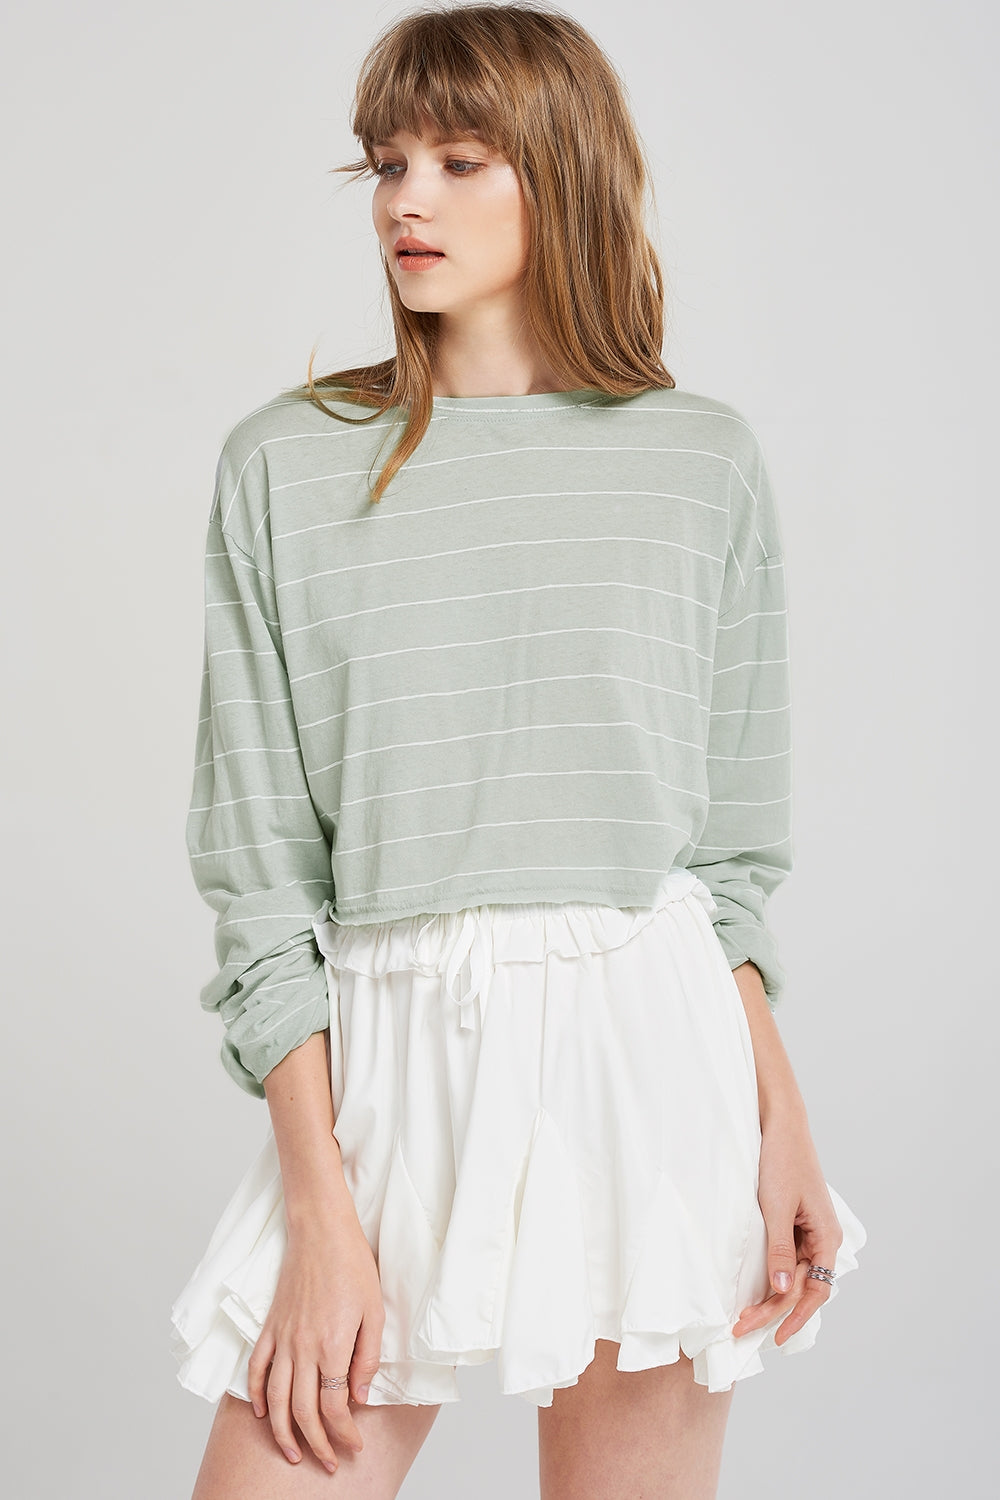 Abigail Lined Crop Top